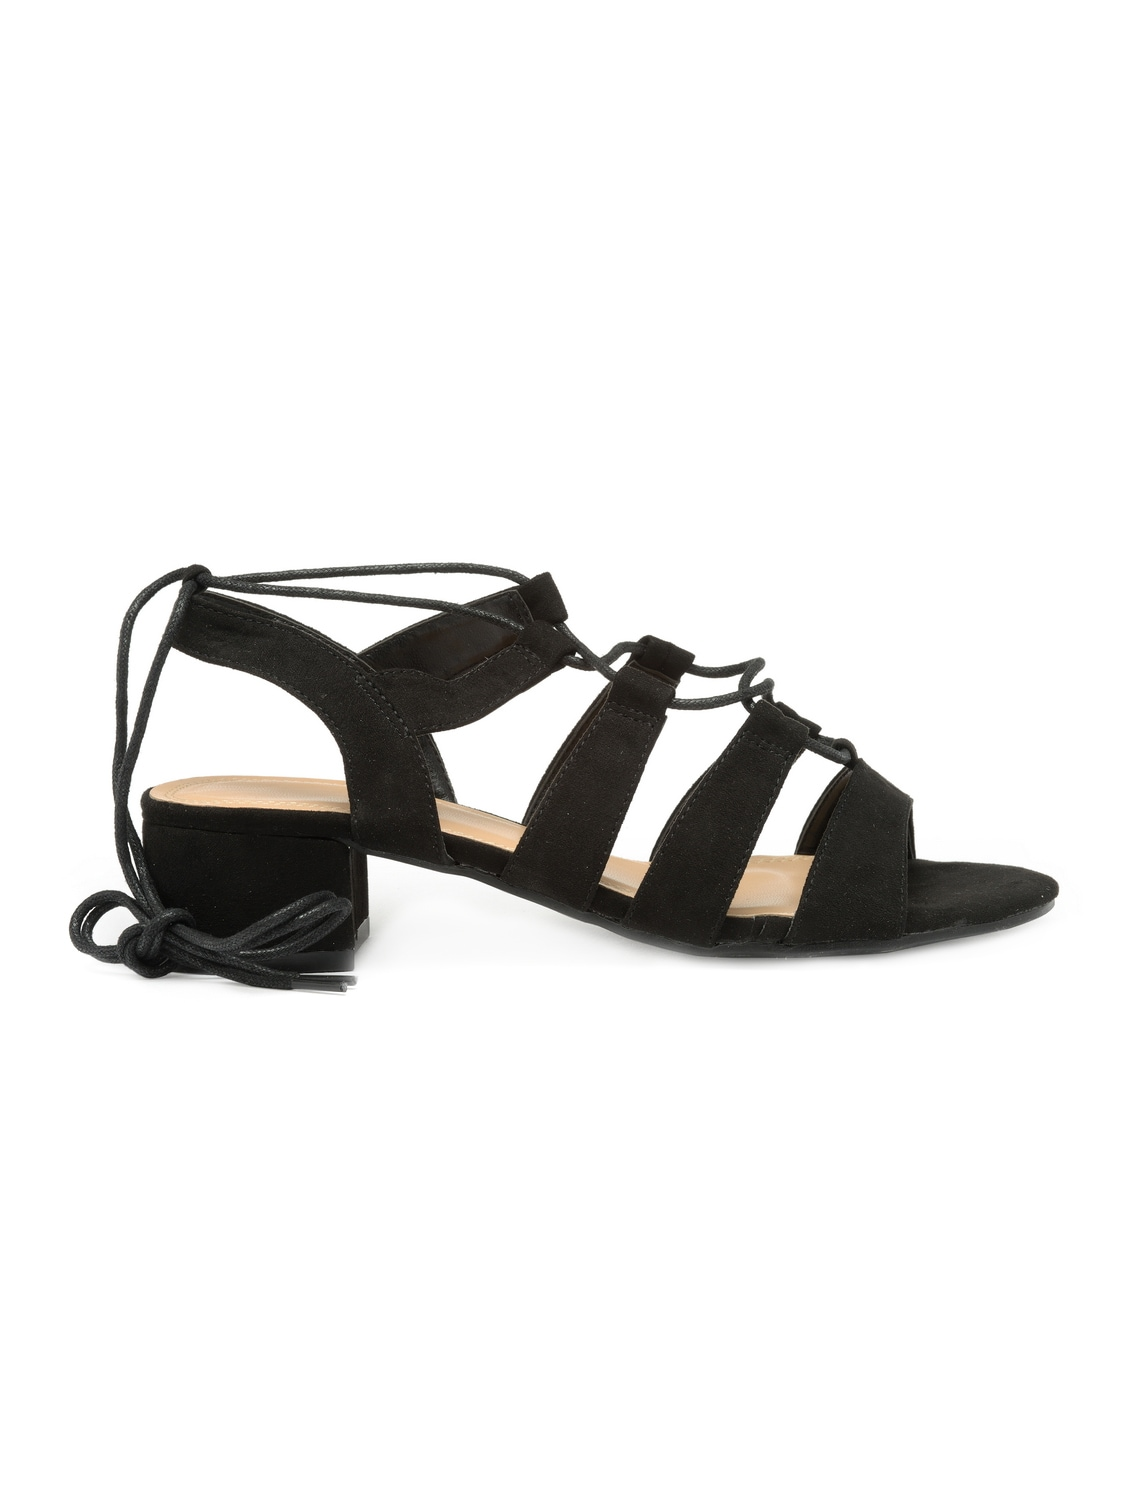 53c9b5ff13eb Buy Black Suede Laceup Sandals for Women from Flat N Heels for ₹1535 at 52%  off